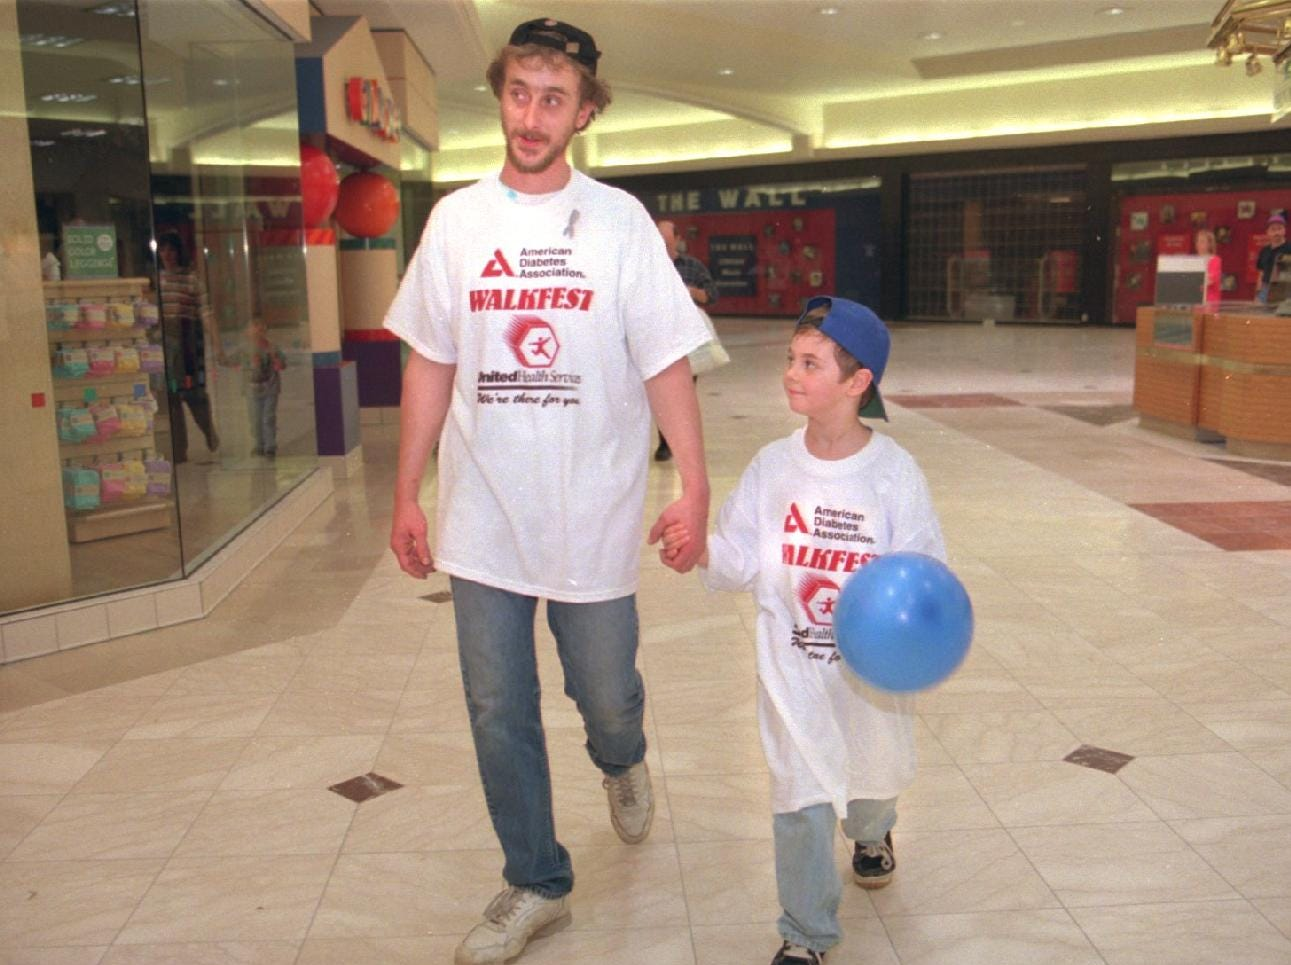 Ray and his son Bradly Glover,8, of Maine stroll the Oakdale mall to fight diabetes as part of the American Diabetes Association Walkfest in March of 1998.